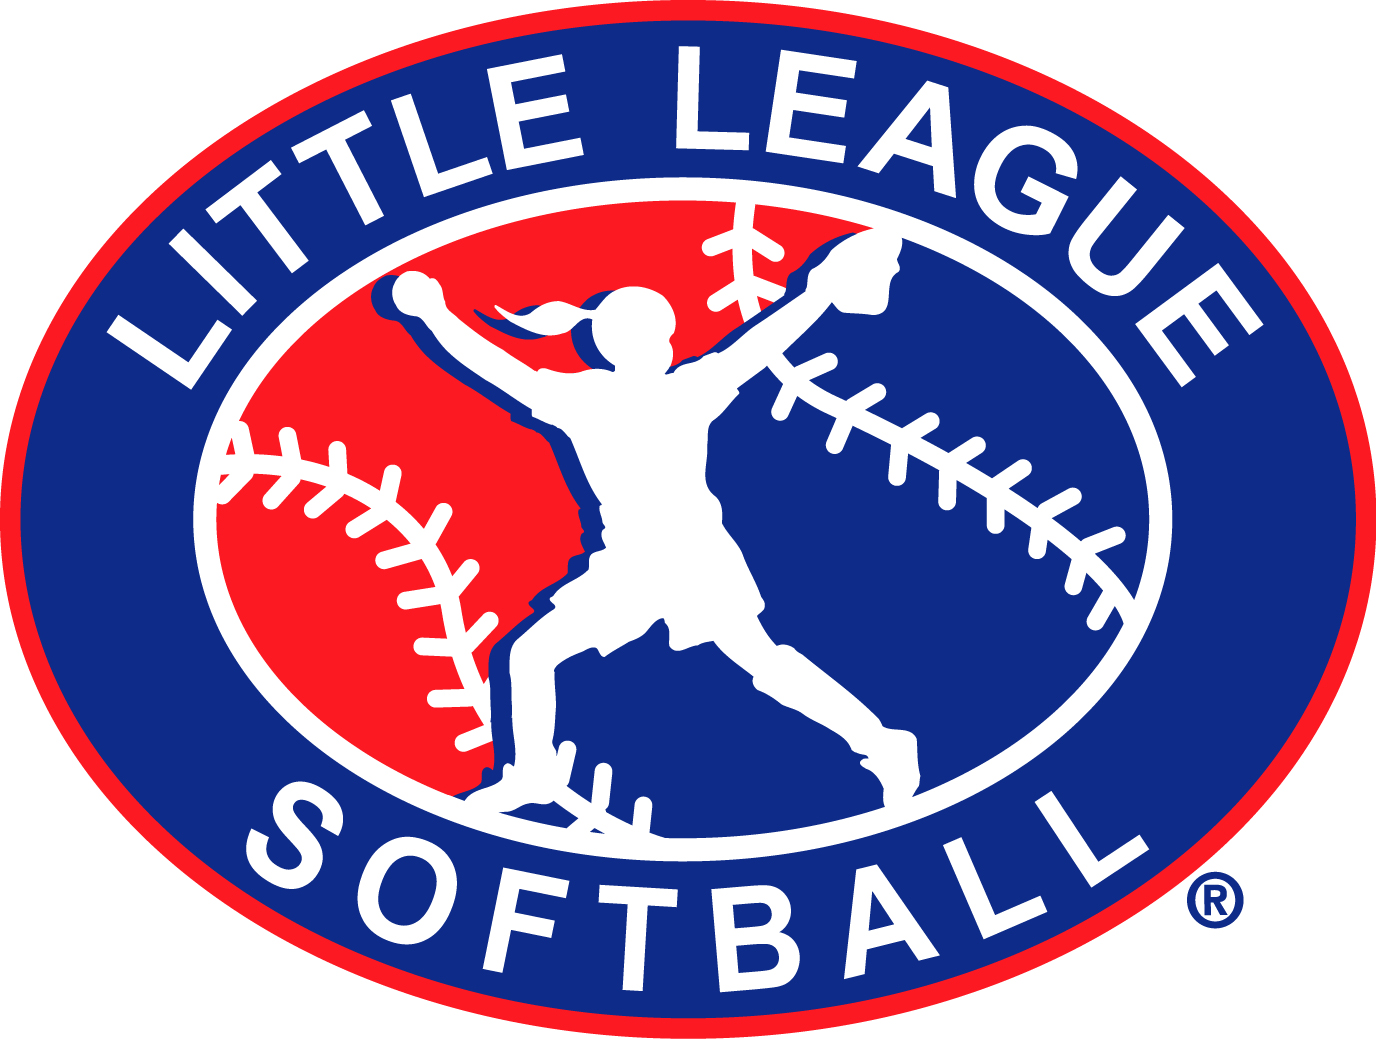 Little-League-Softball.jpg